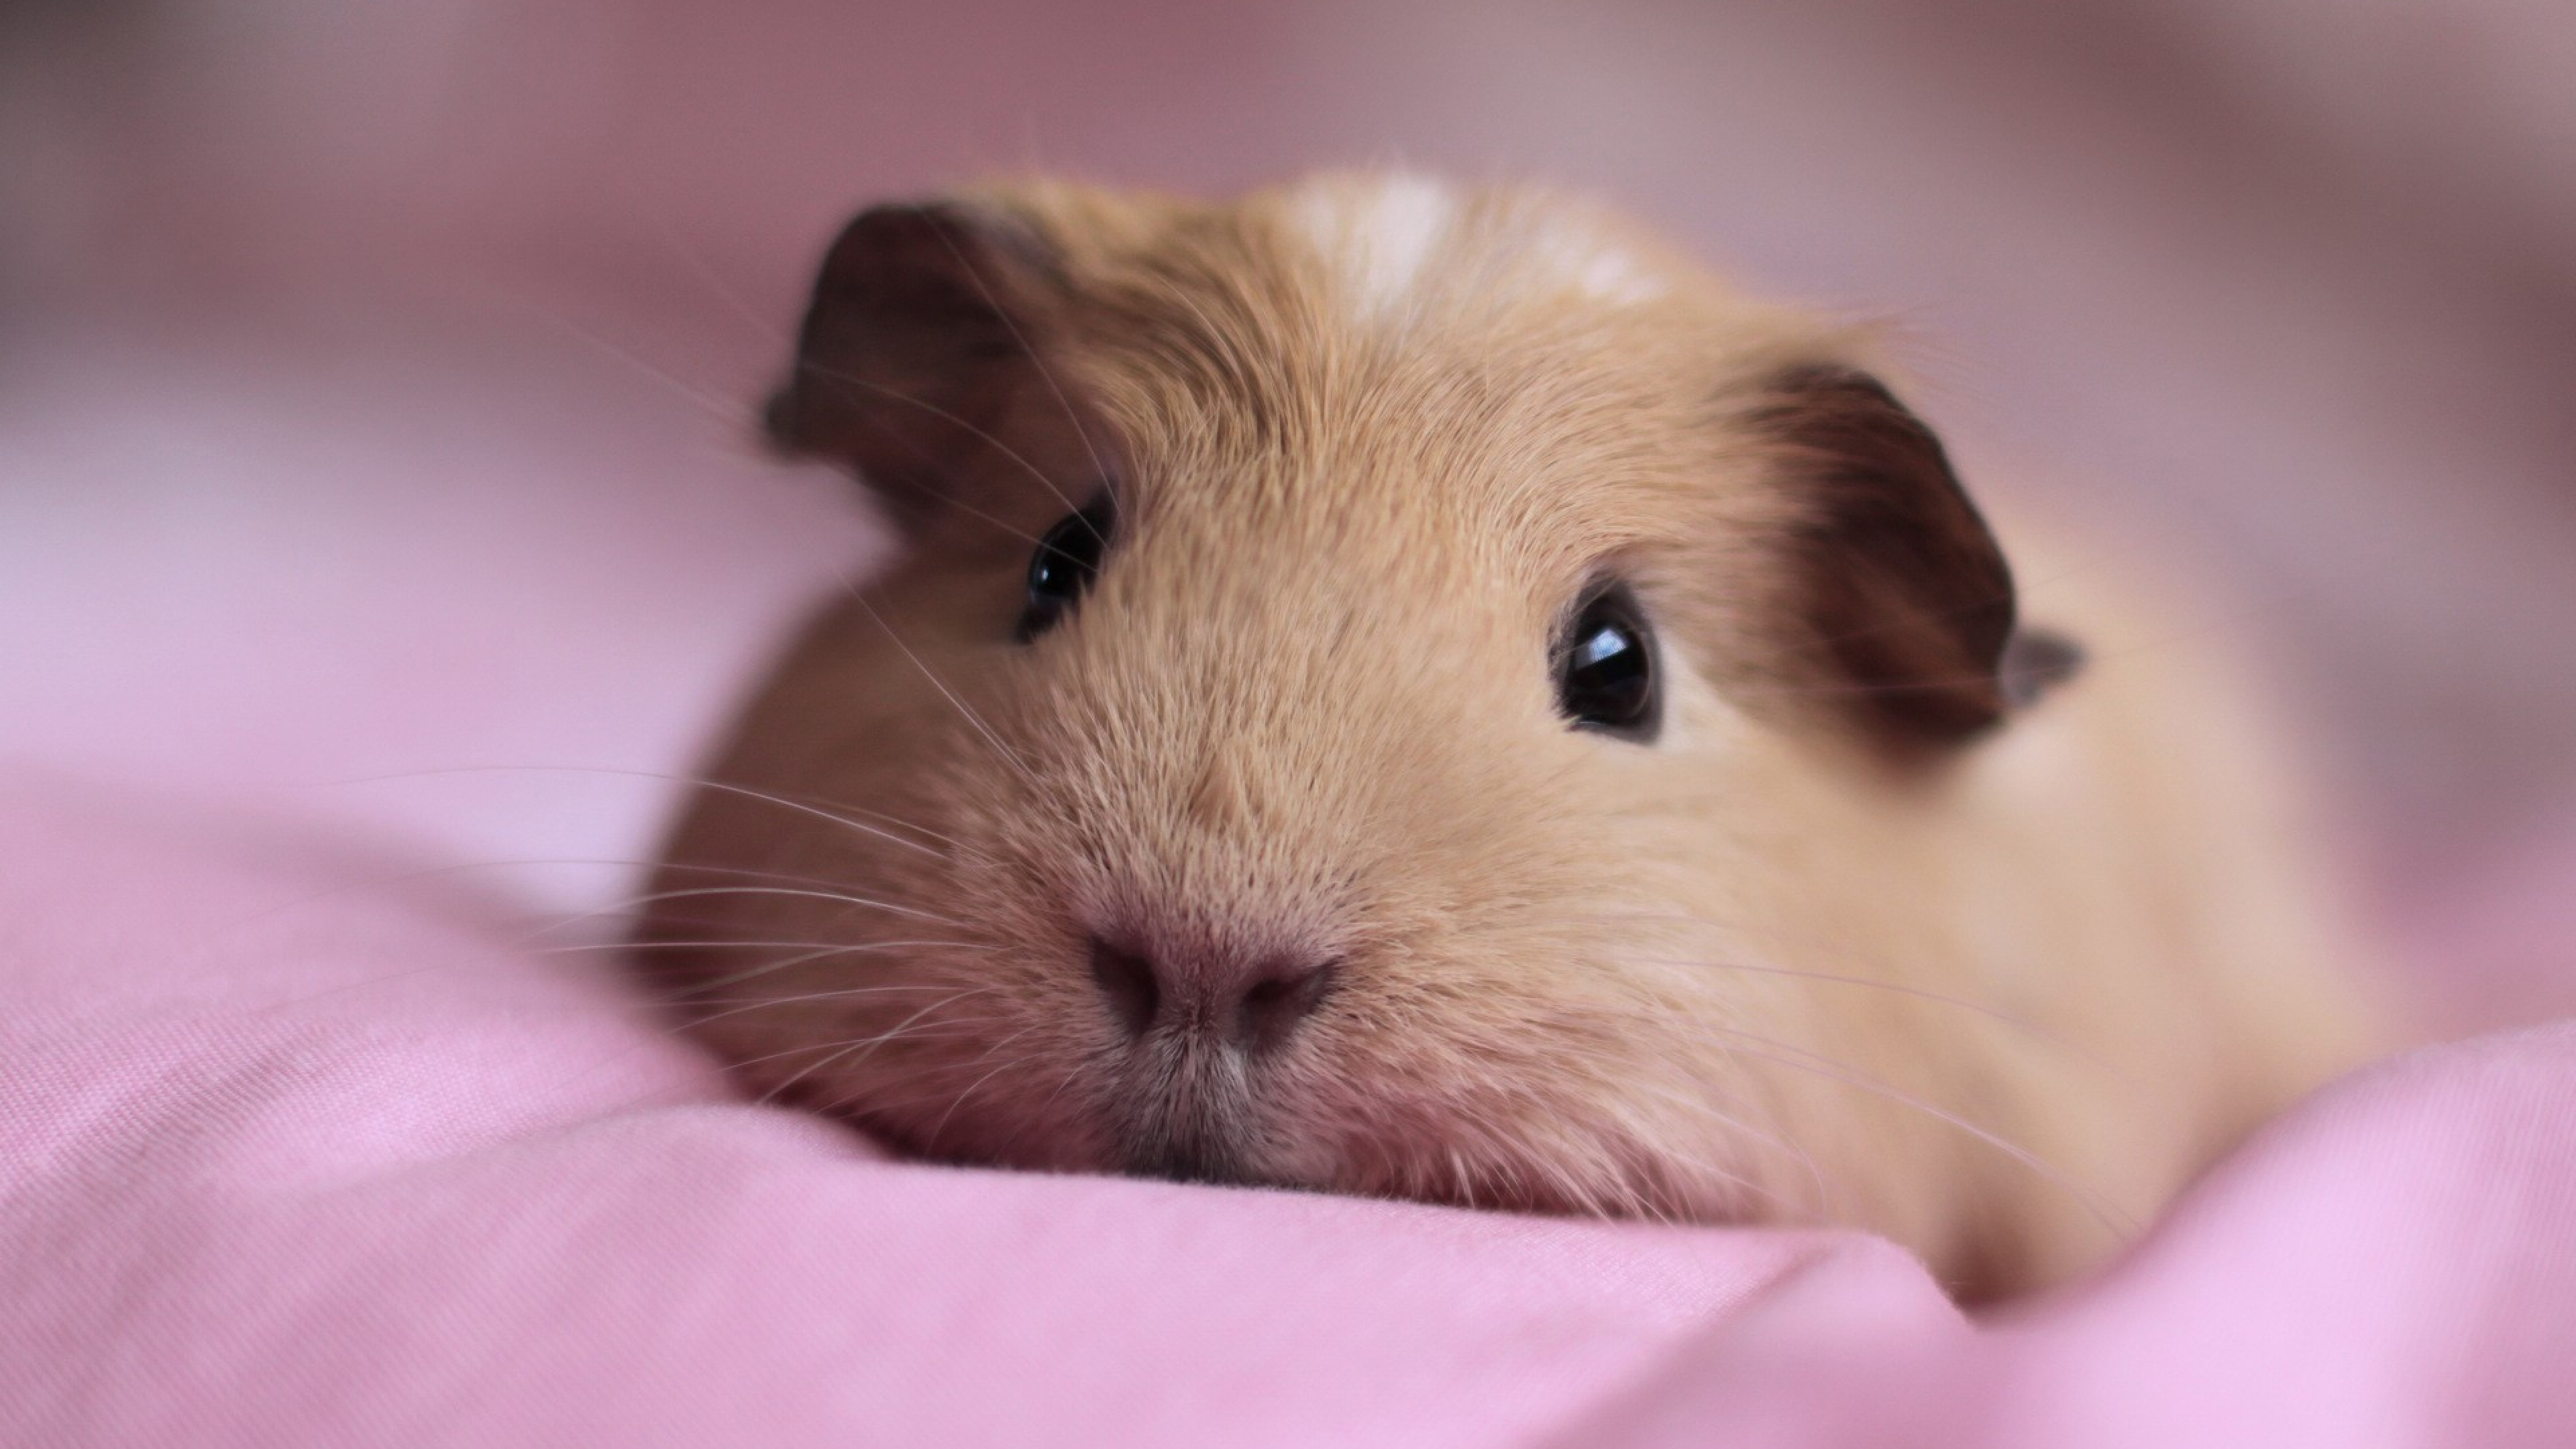 3840x2160 Wallpaper guinea pig, snout, fluffy, down, cute